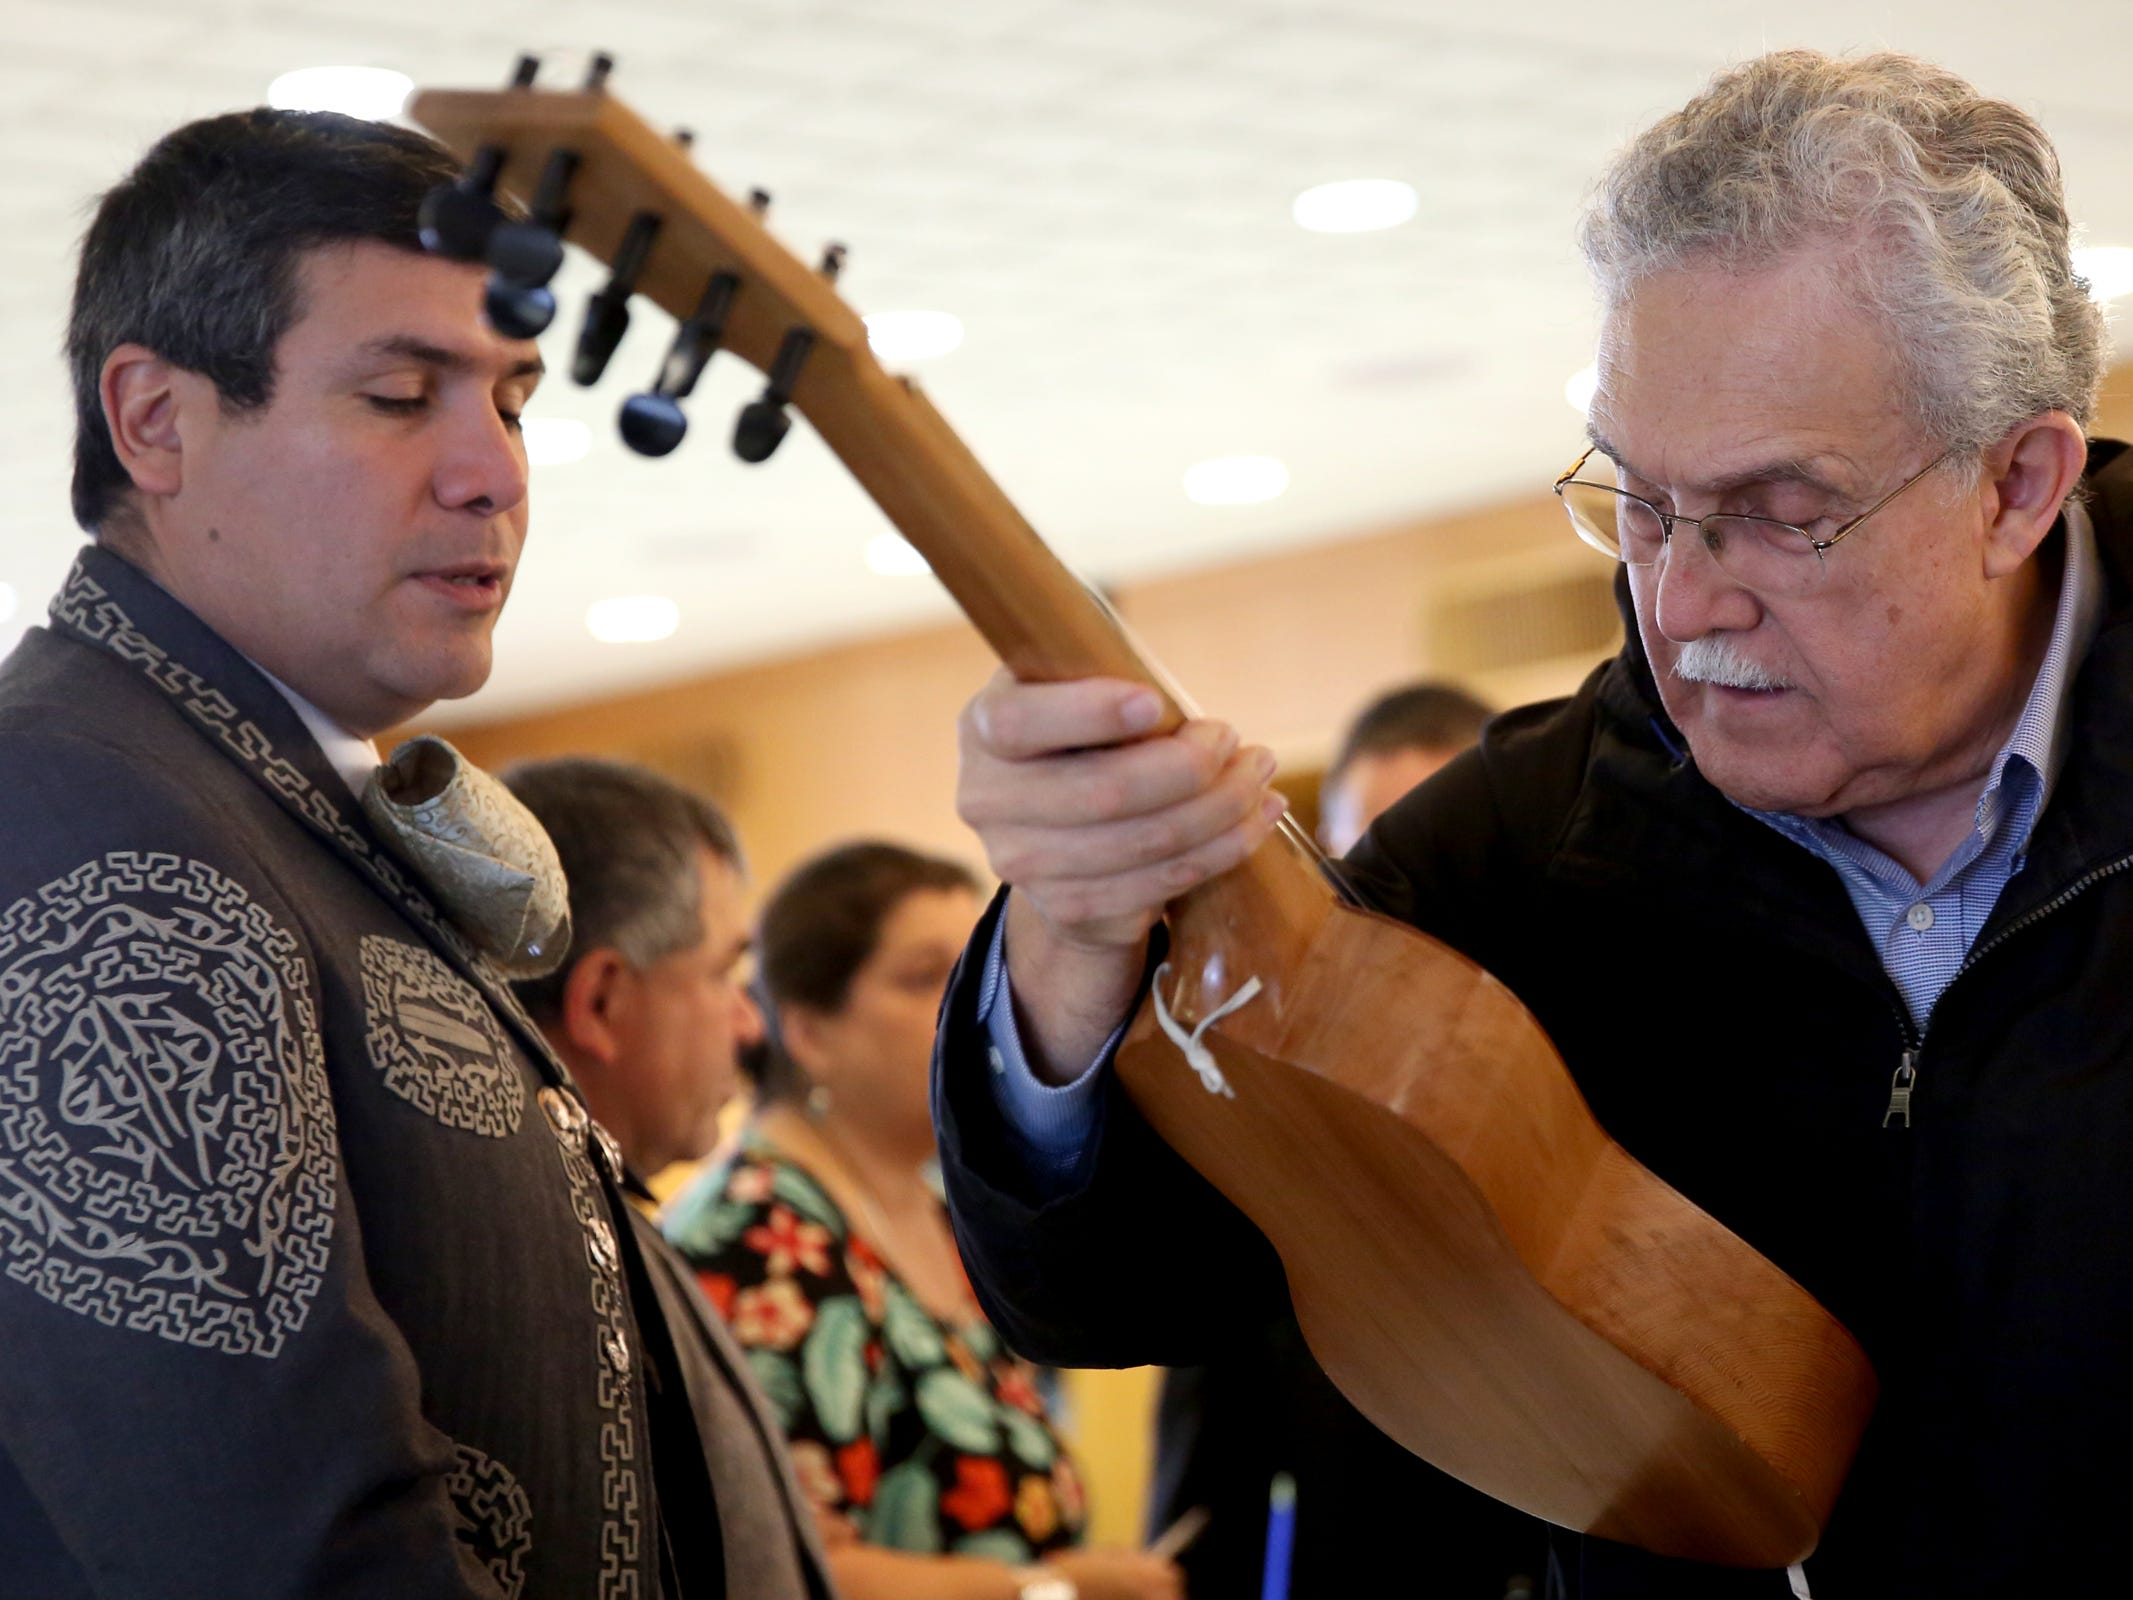 F. Javier Navarro, left, and Efrain Diaz-Horna, both of Salem, look over a jarana, a guitar-like instrument from Mexico, during Hispanic Heritage Day at the Oregon State Capitol on Saturday, Oct. 20, 2018.